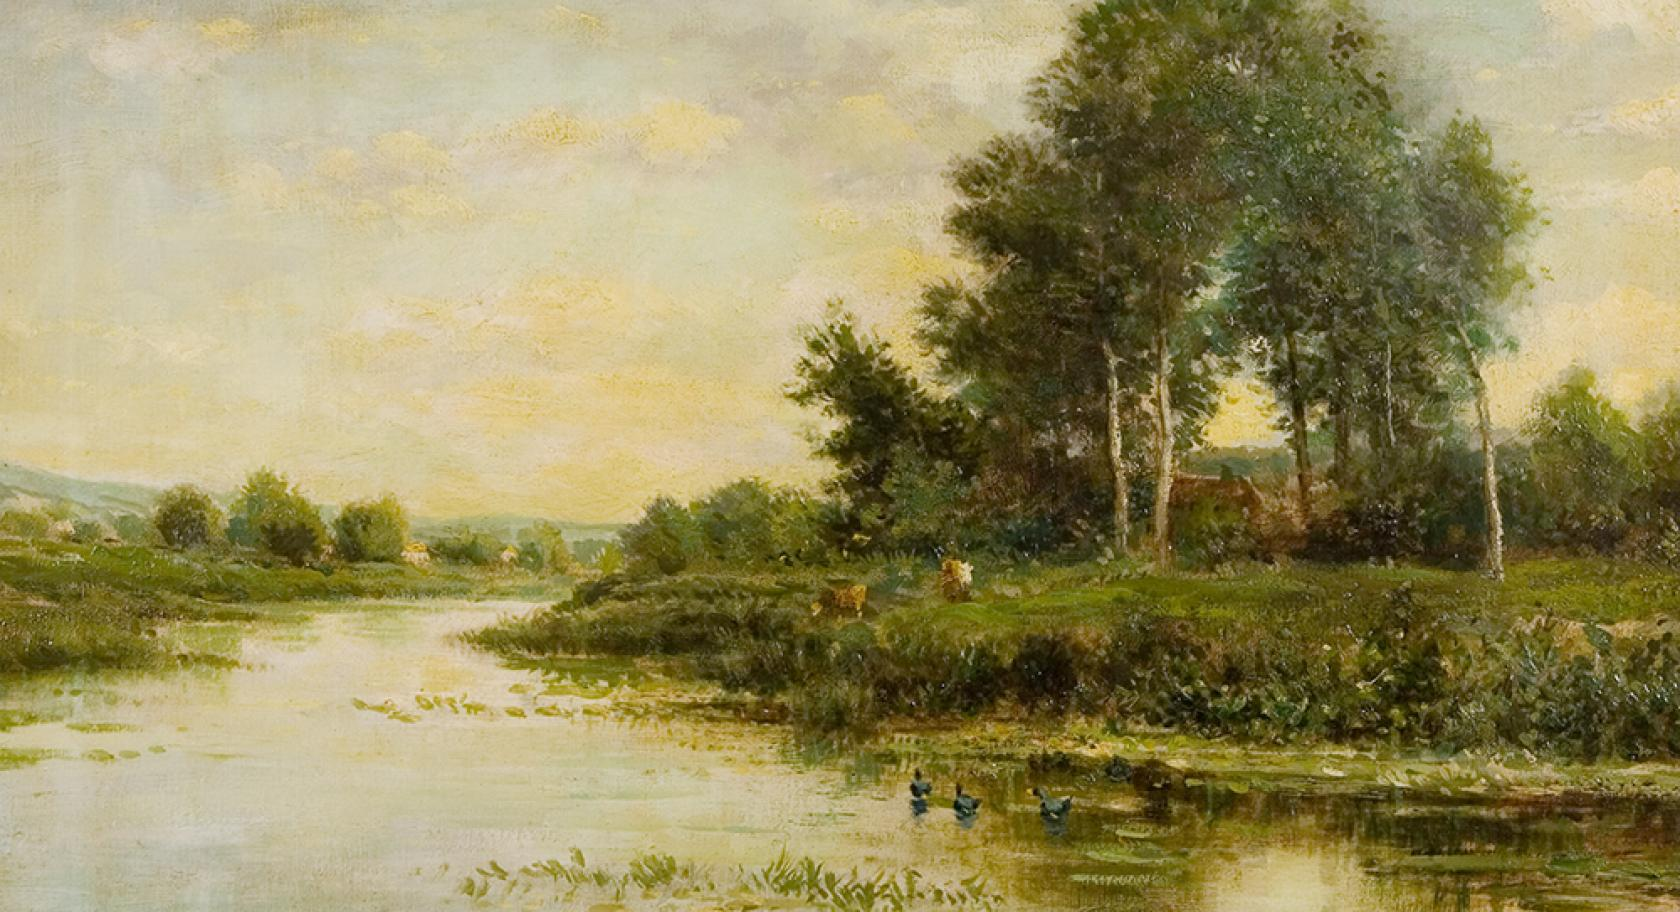 Charles-Francois Daubigny, The River,  ca. 1837-1878, oil on canvas, gift of Edward Bartlett Wicks, from the Permanent Collection at the Utah Museum of Fine Arts, umfa1926.010.